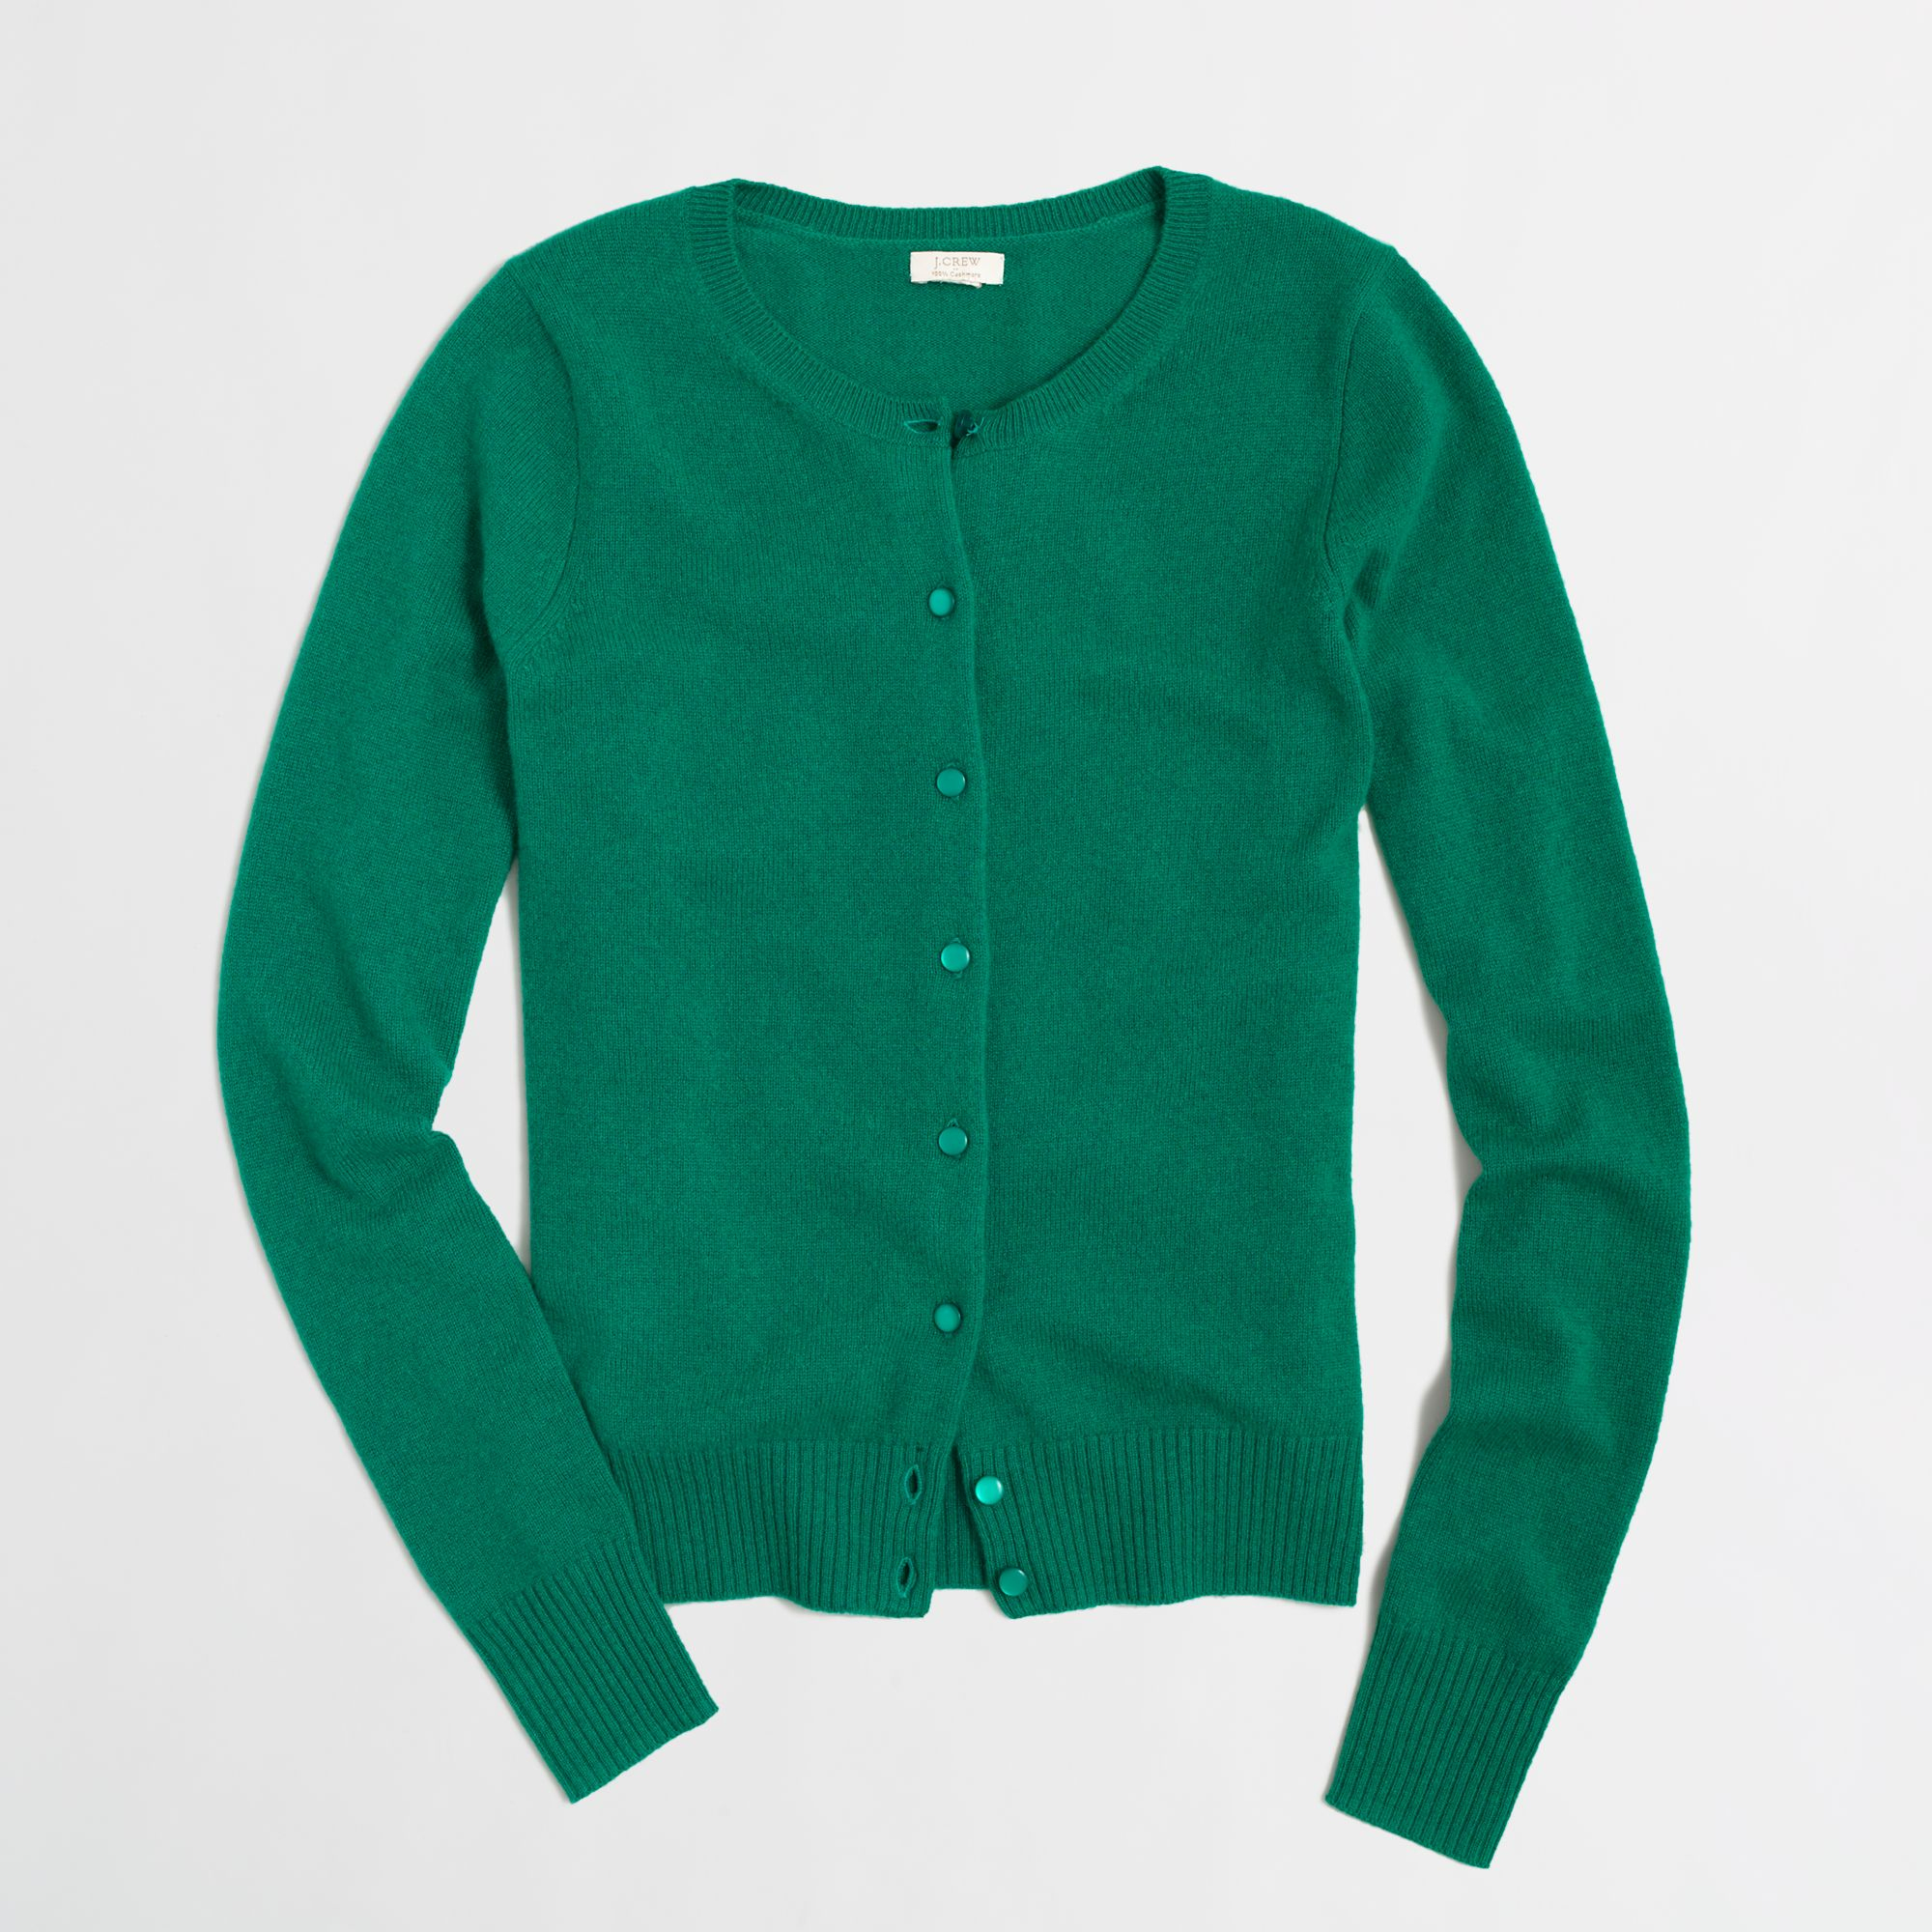 J.crew Factory Cashmere Cardigan in Green | Lyst